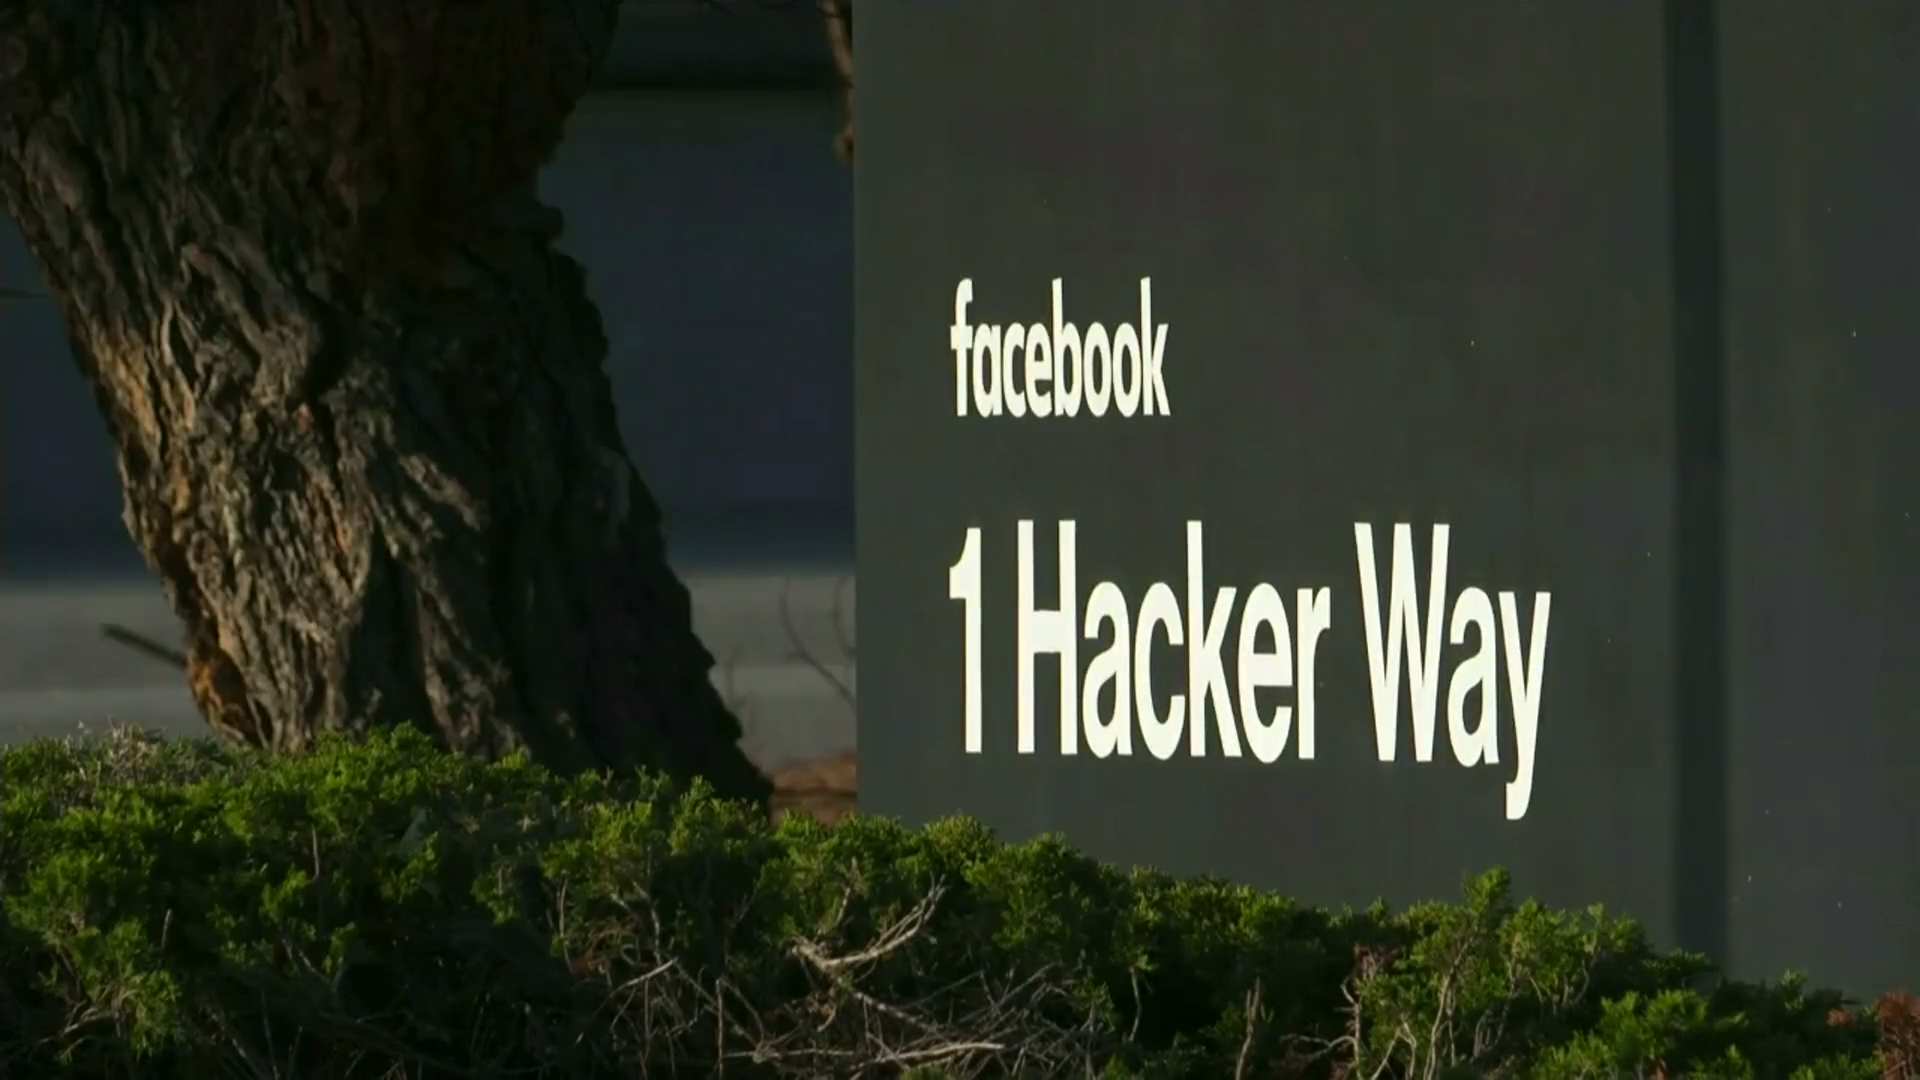 Christchurch Live Stream: Social Media Firms Under Fire After Live-streaming Of